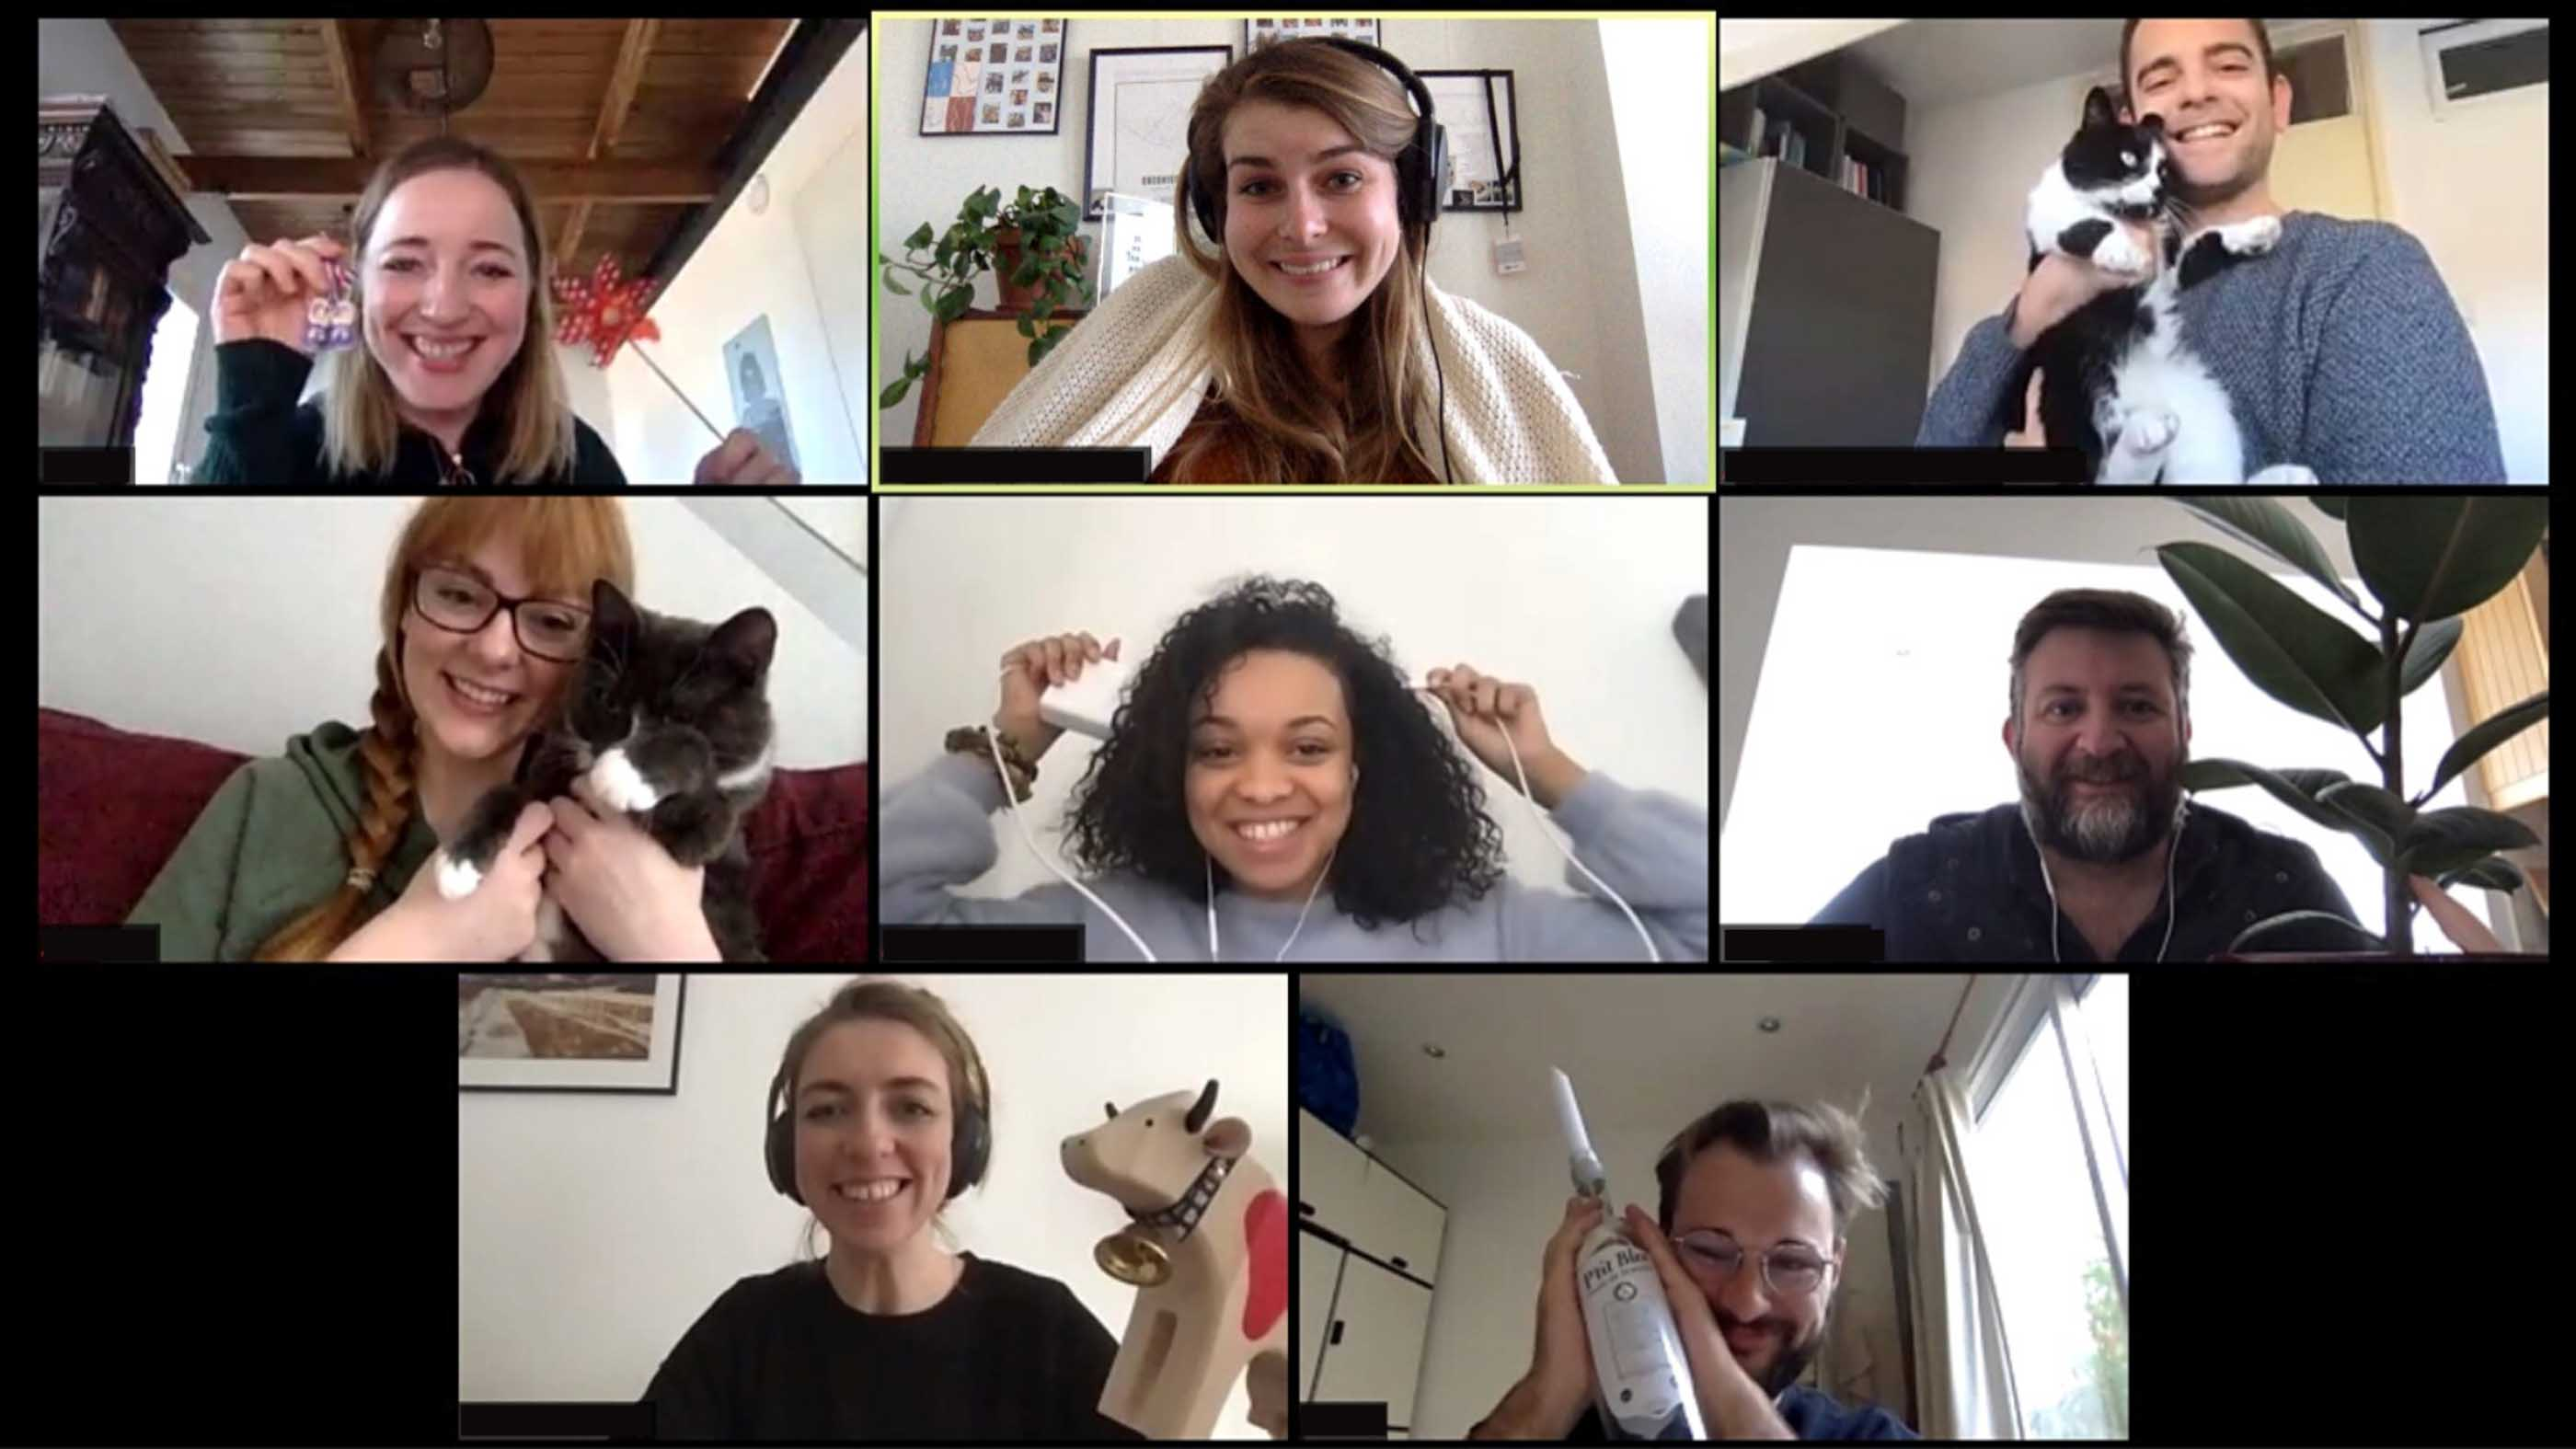 Eight people having fun on a Zoom call